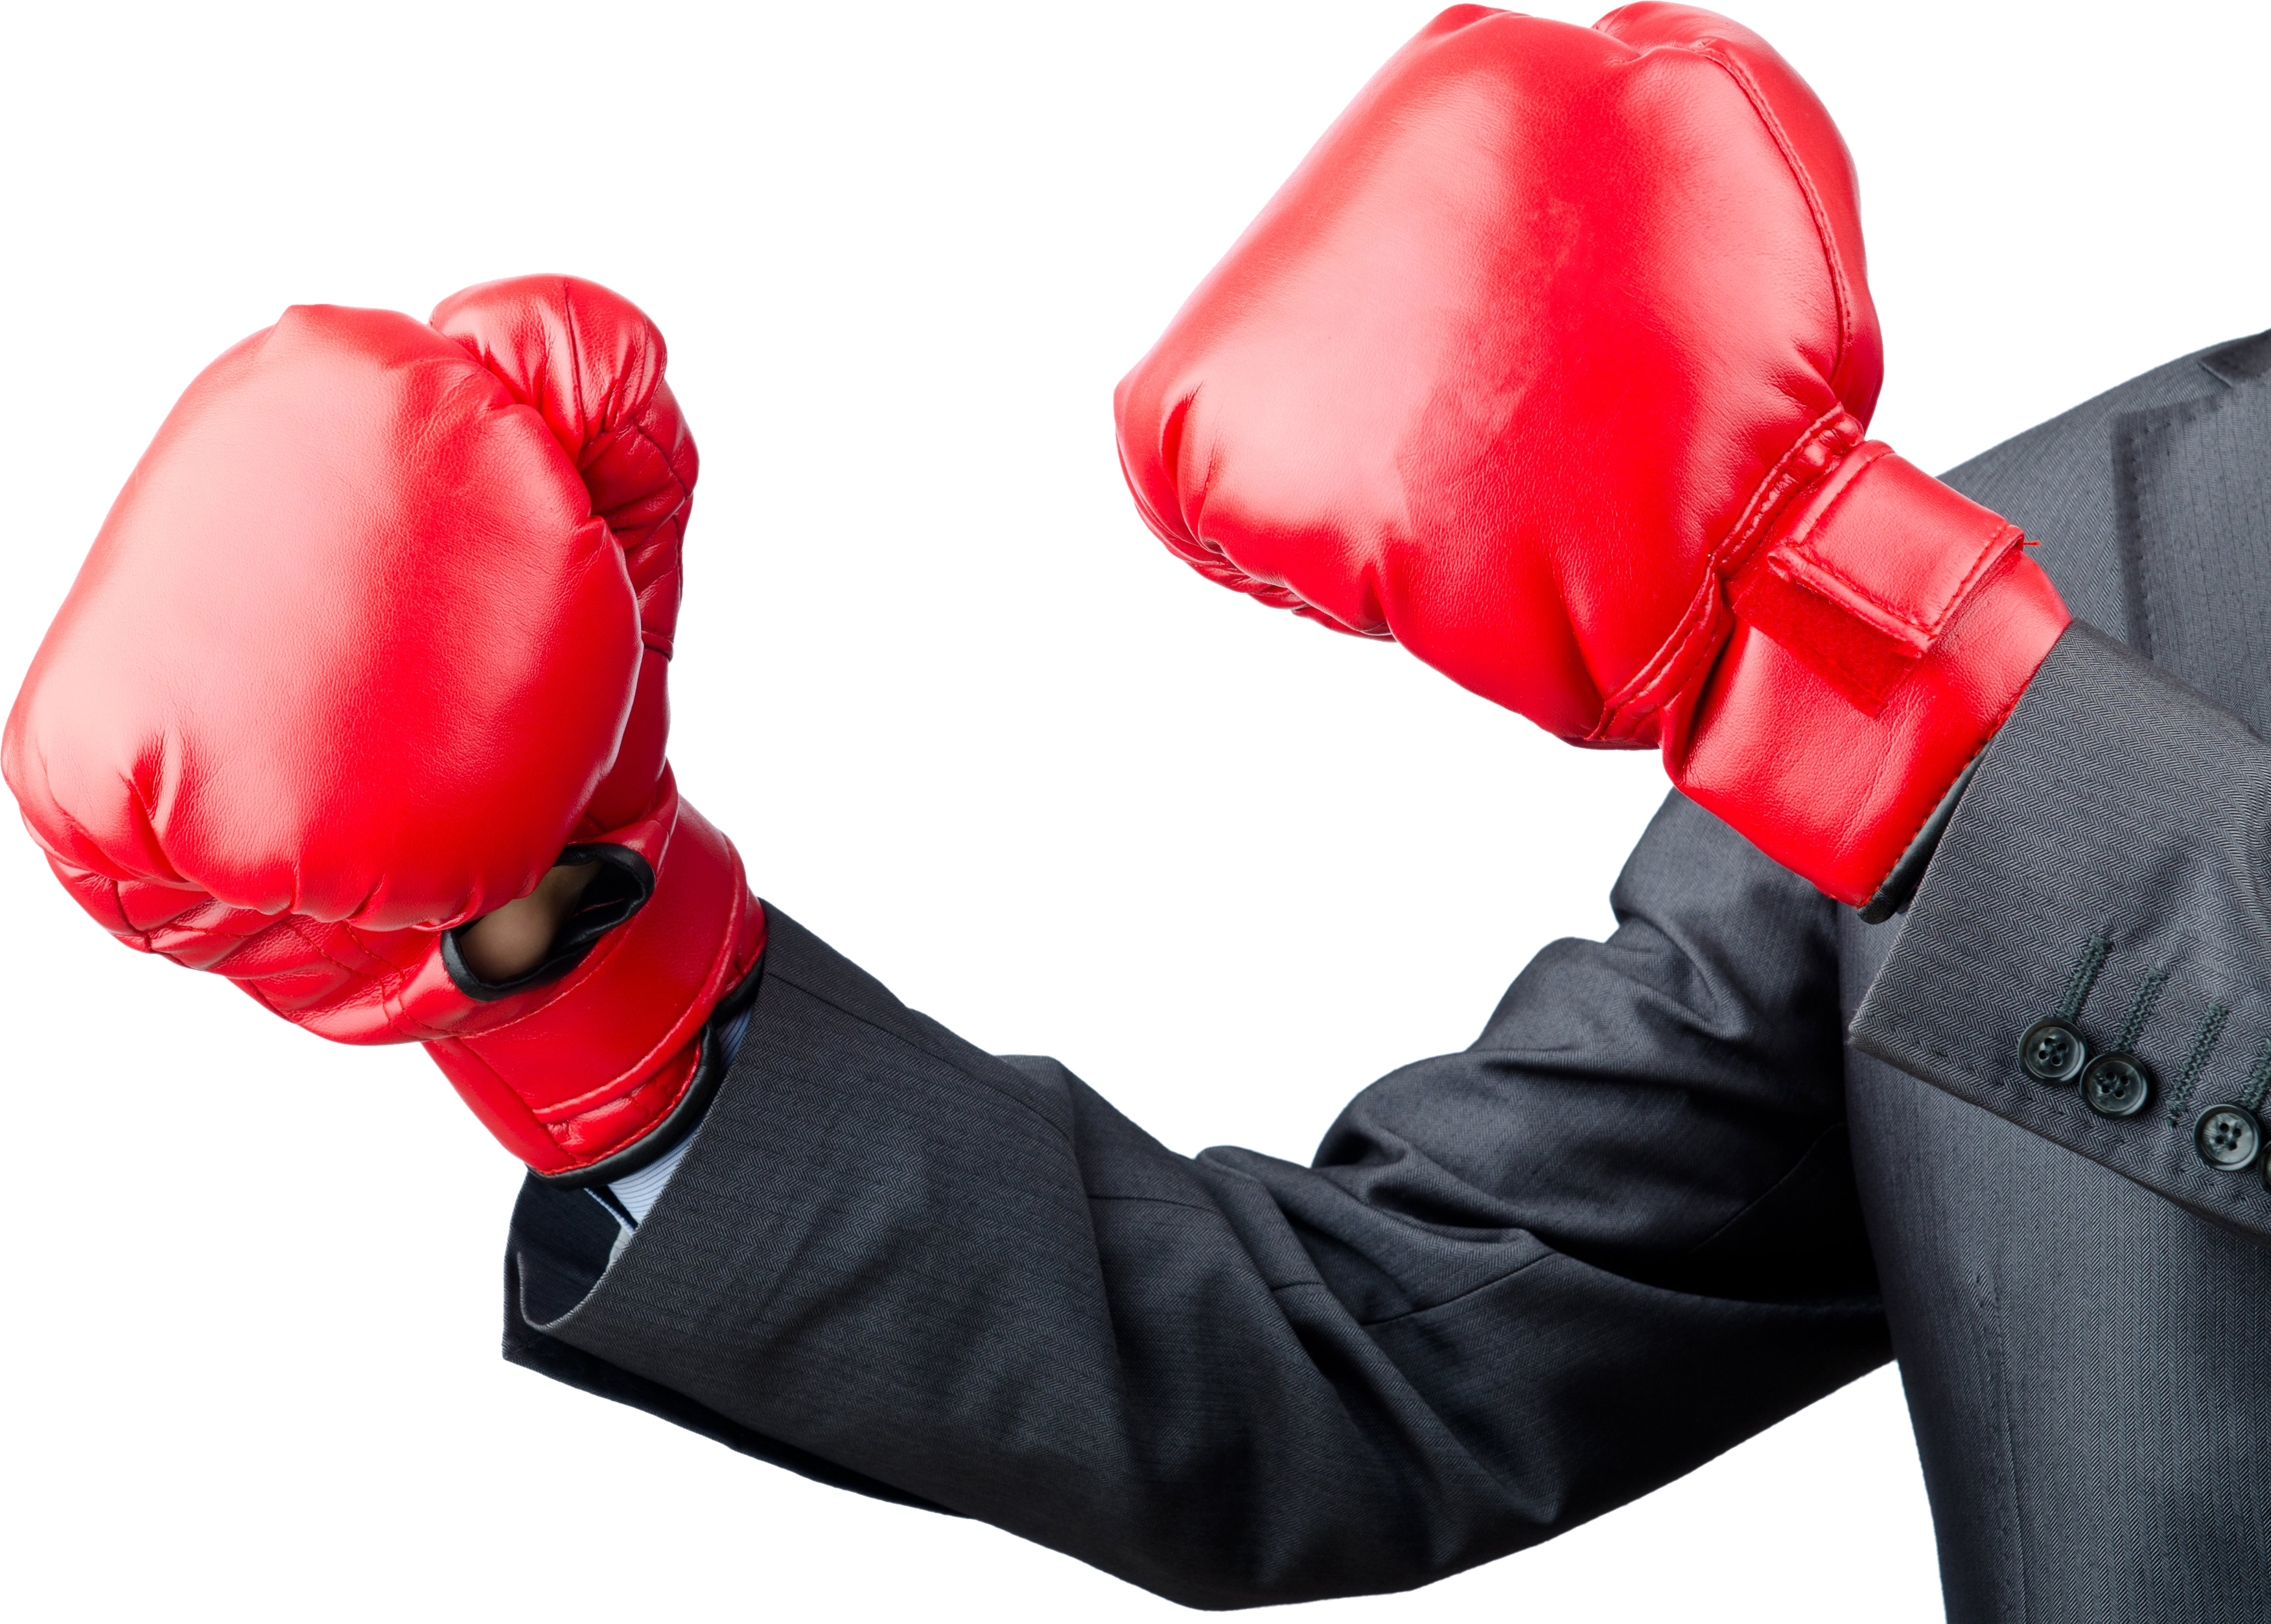 Fighting clipart woman boxing. Gloves png images free